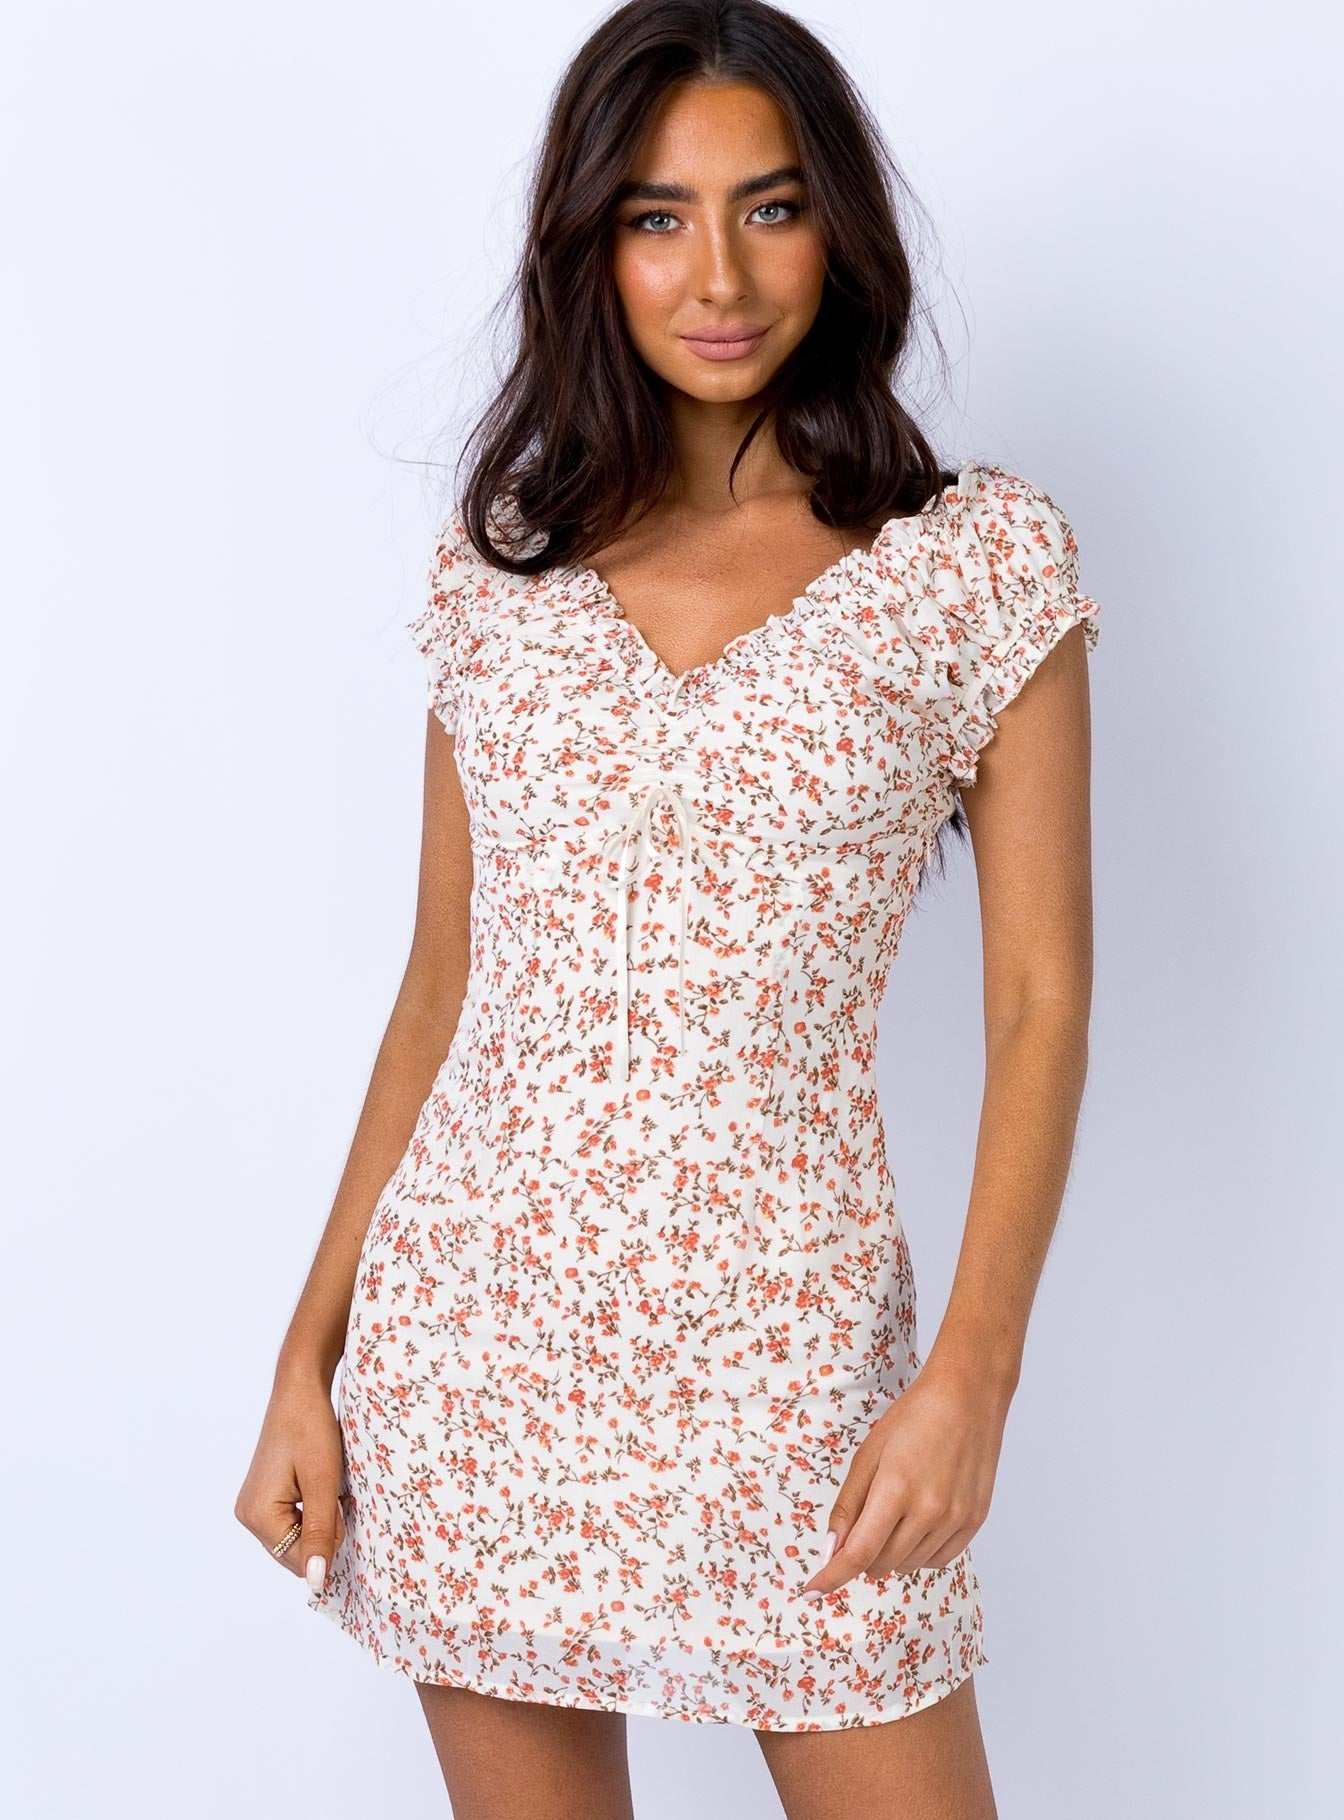 Le Ann Mini Dress by Princess Polly